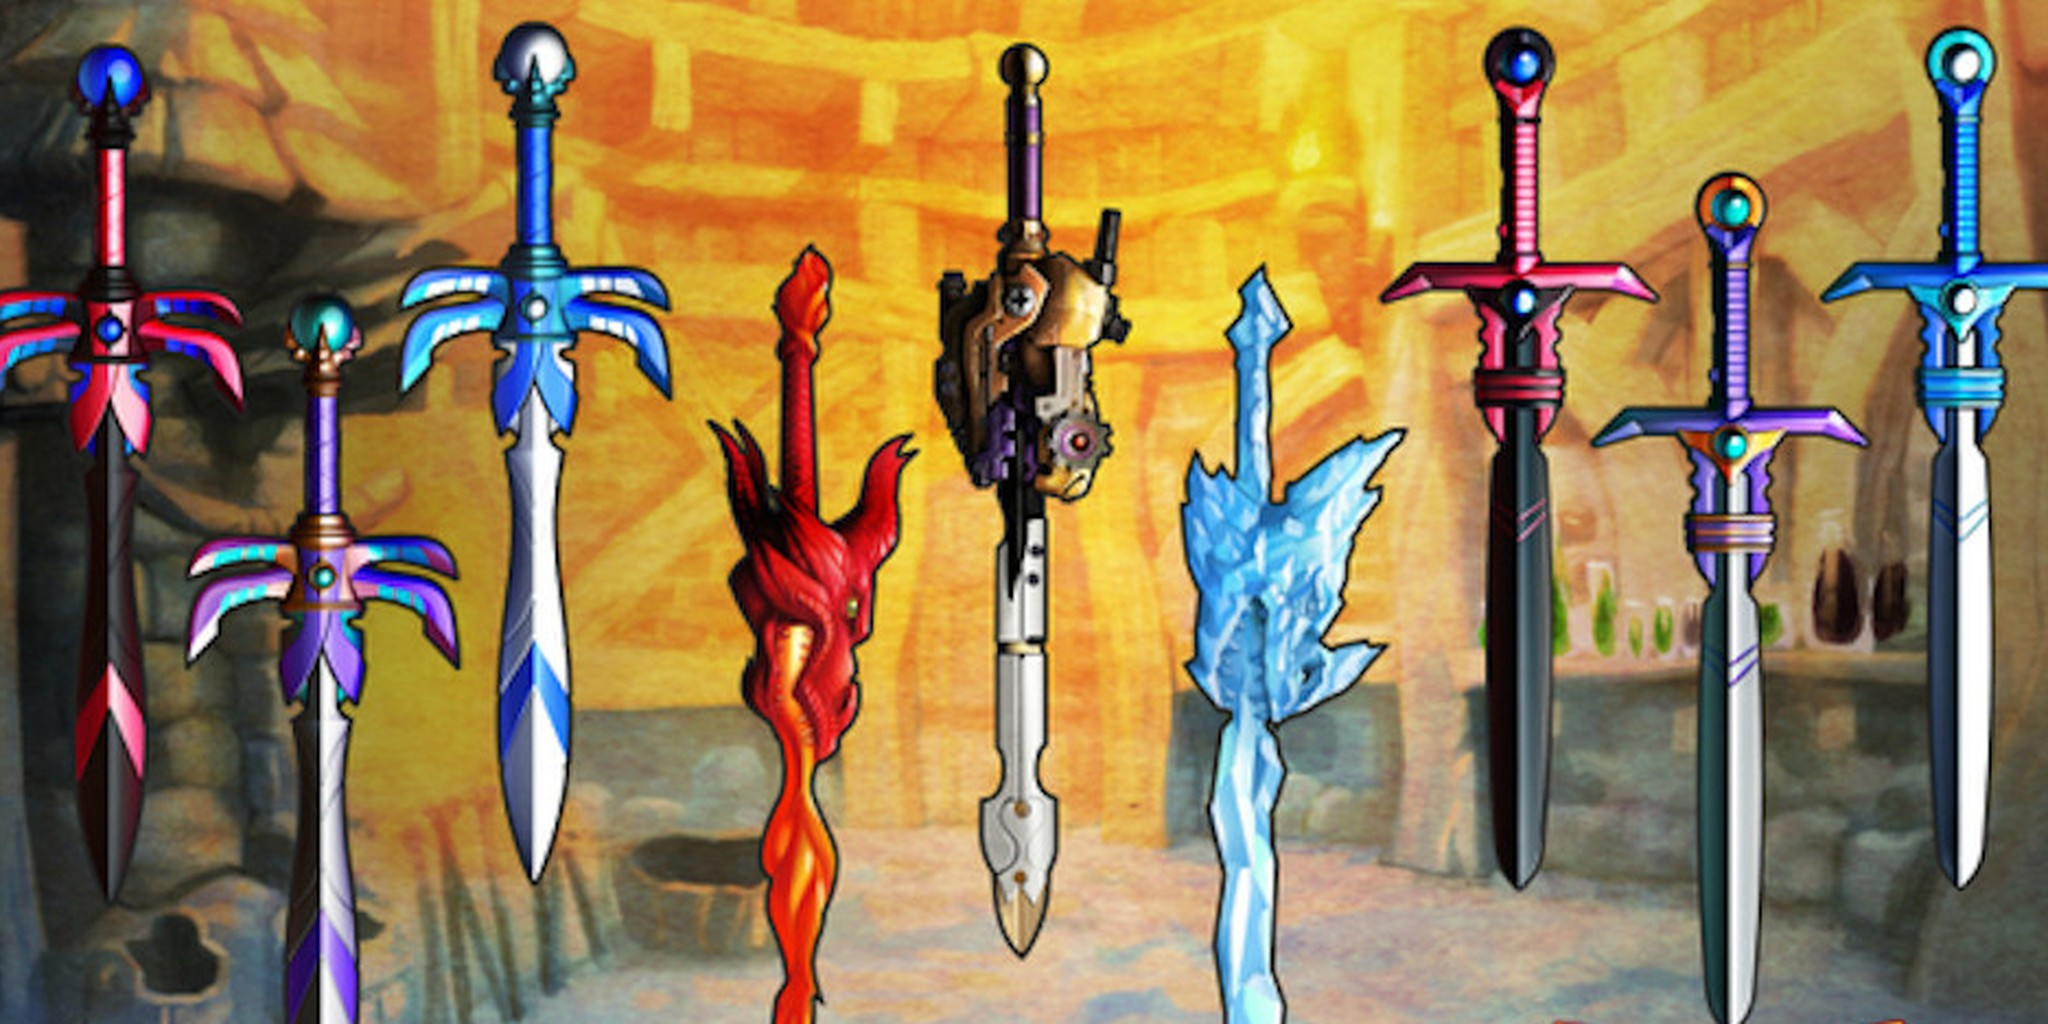 Drawn weapon toy sword Makes swords the awesome ever